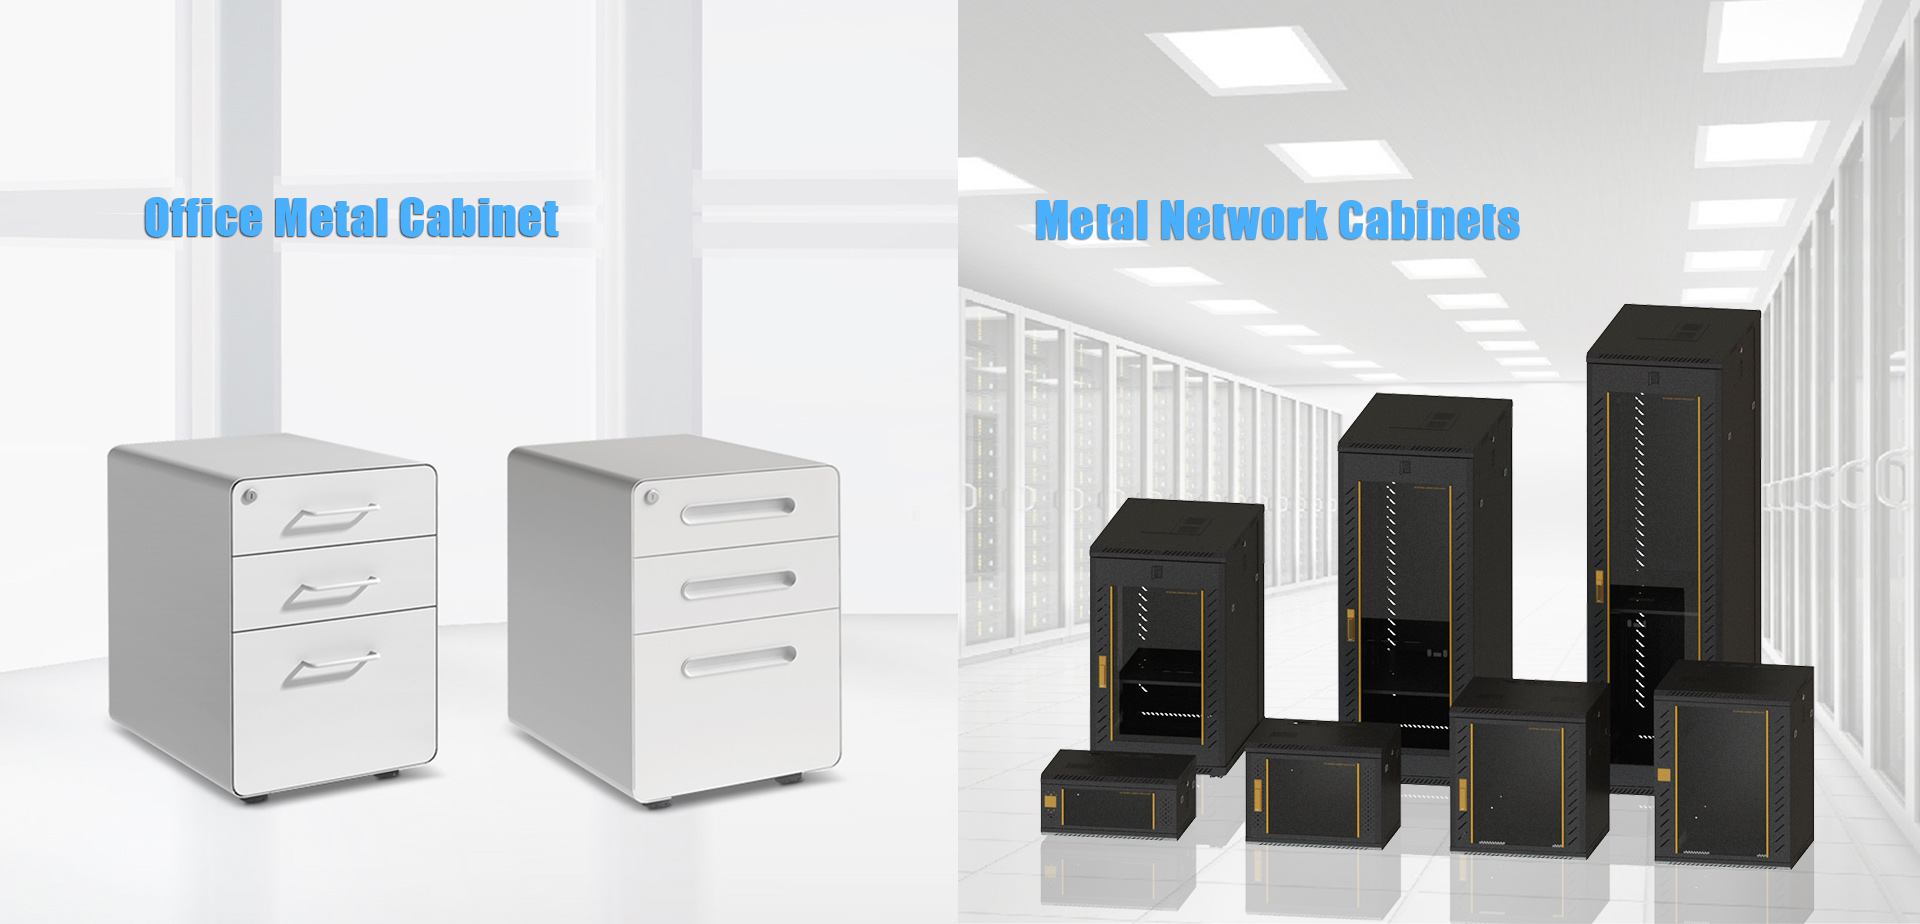 Metal Network Cabinets